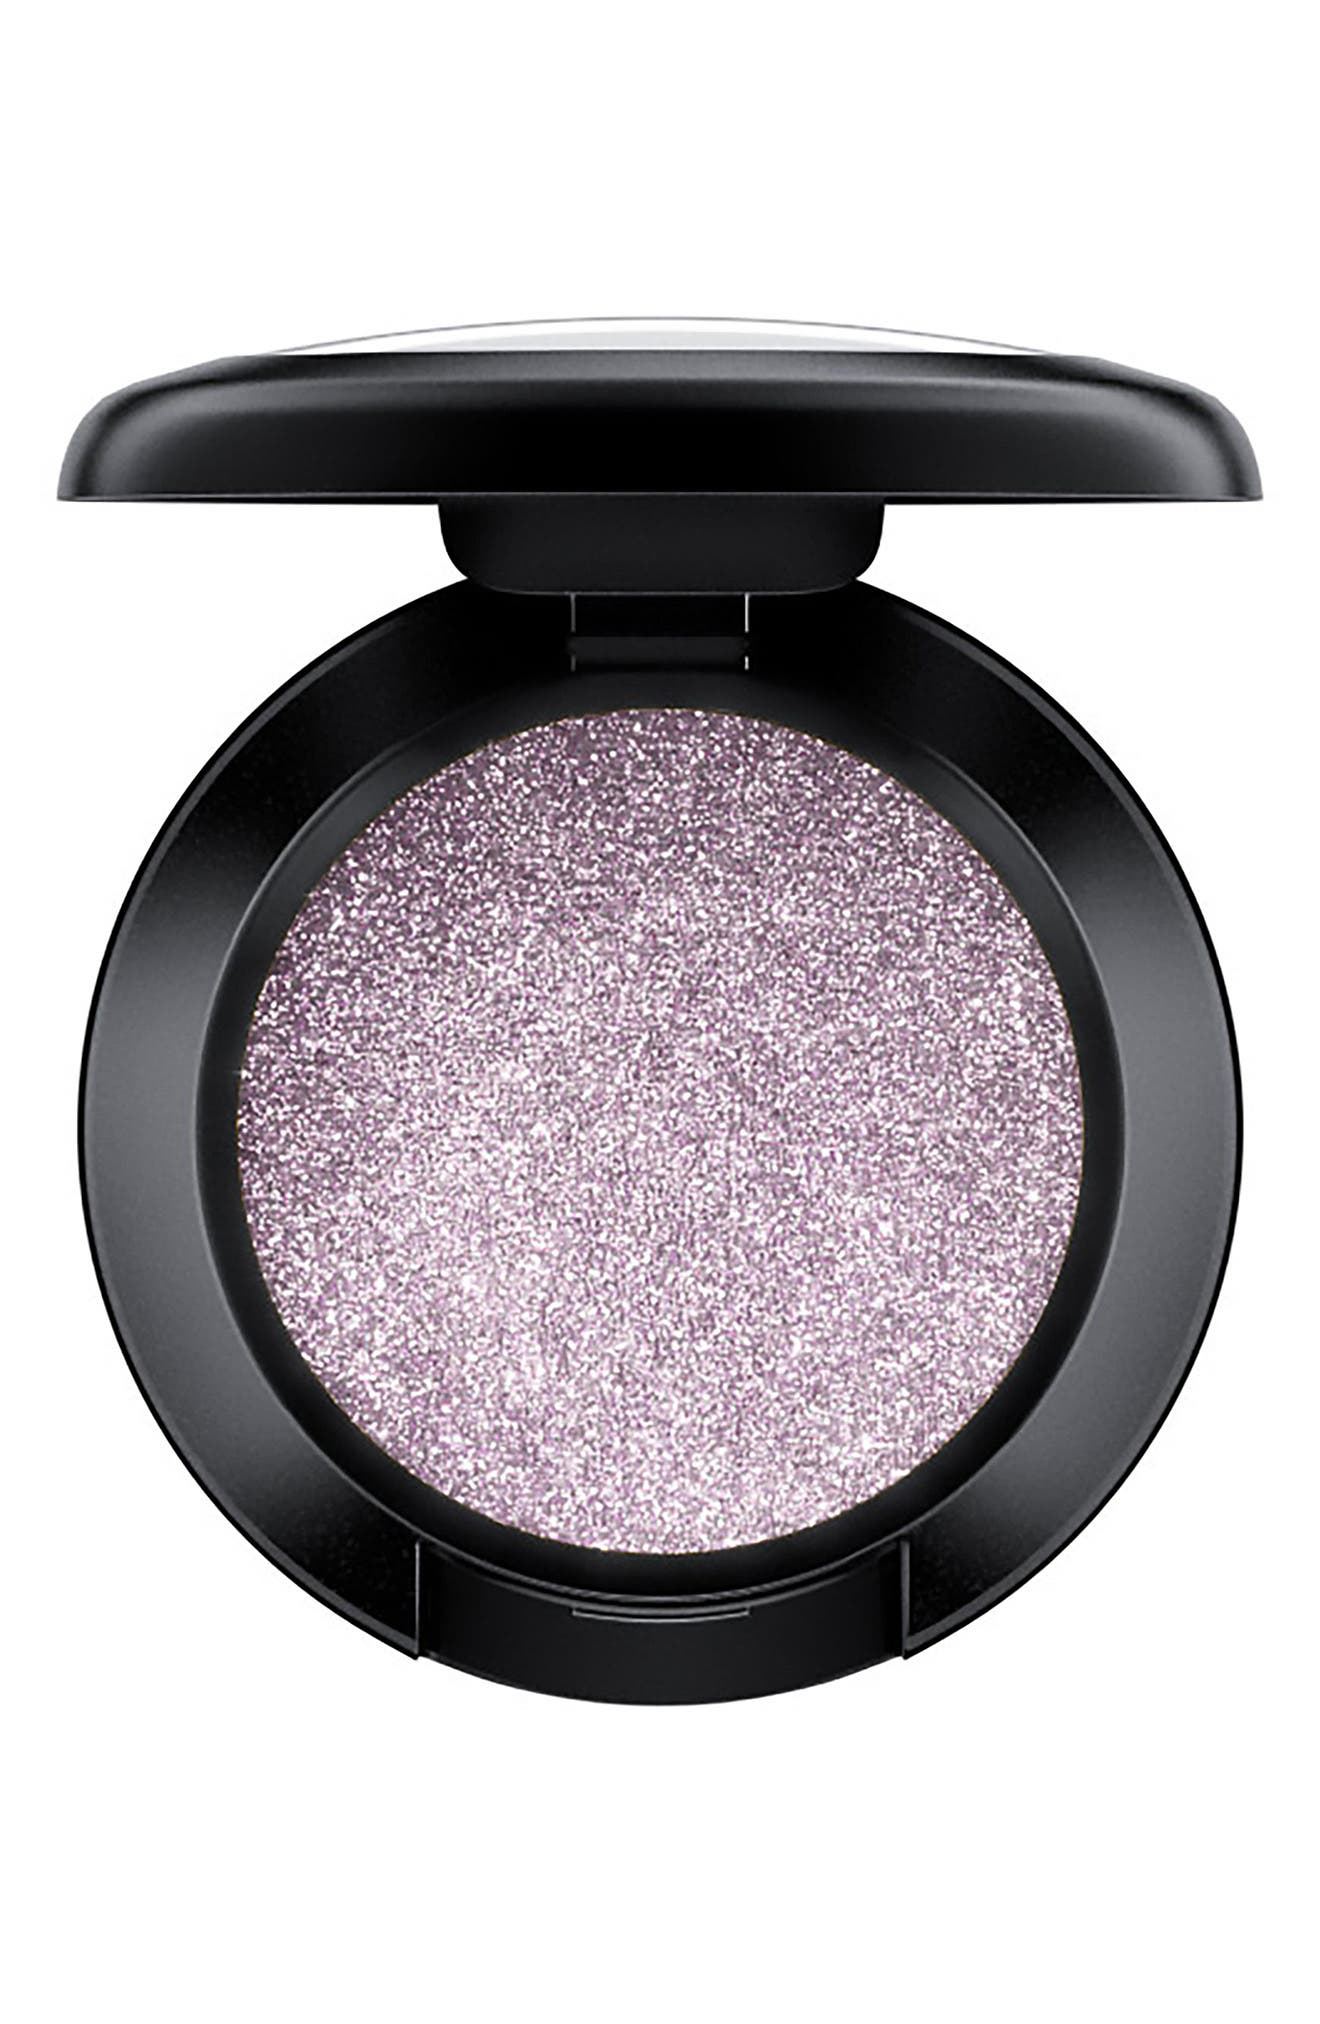 MAC Supernatural Dazzle Dazzleshadow Eyeshadow